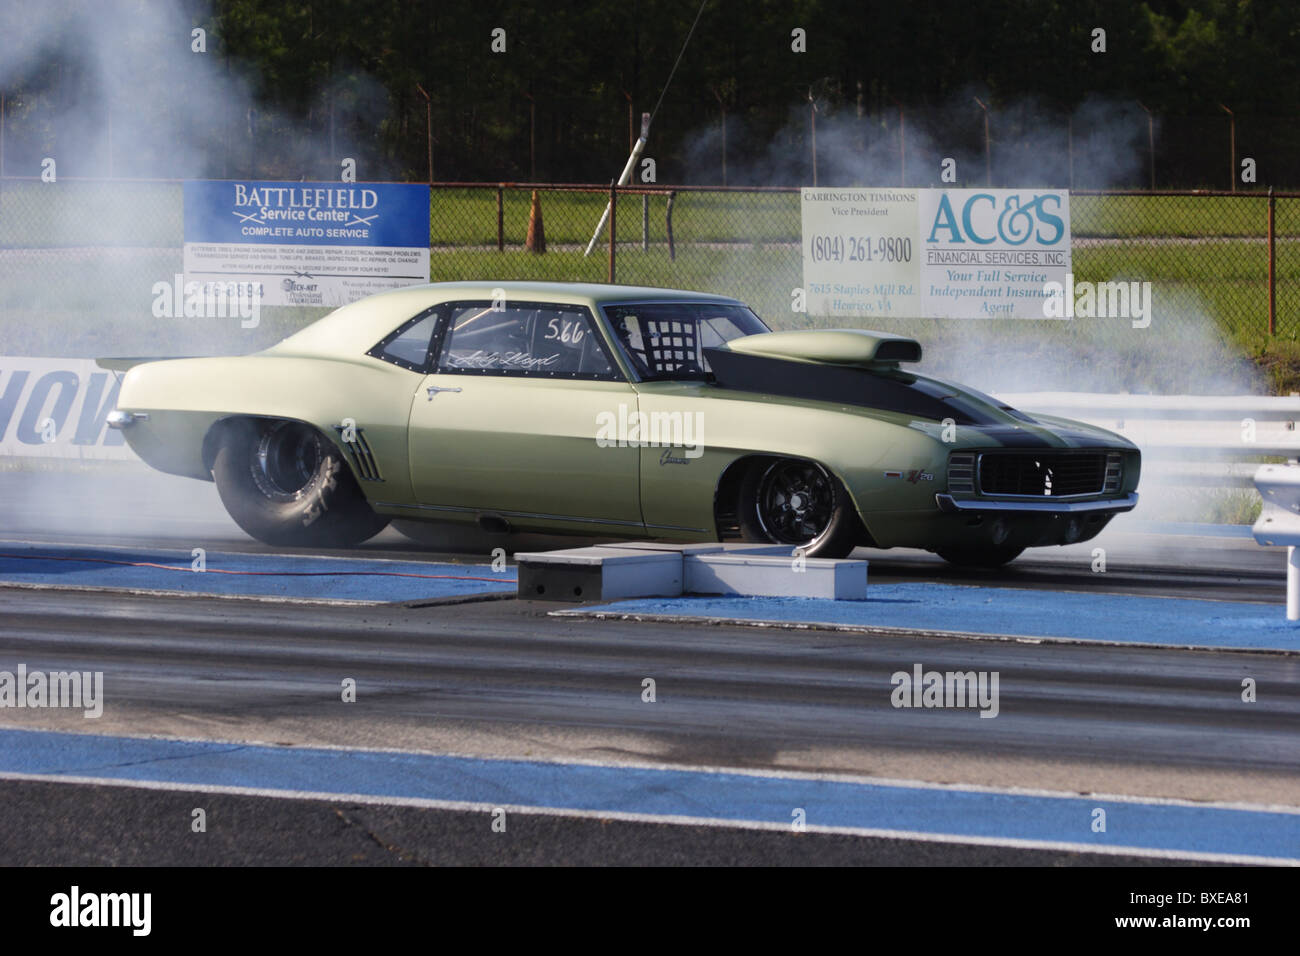 racing car launching at richmond dragway in sandston, virginia stock